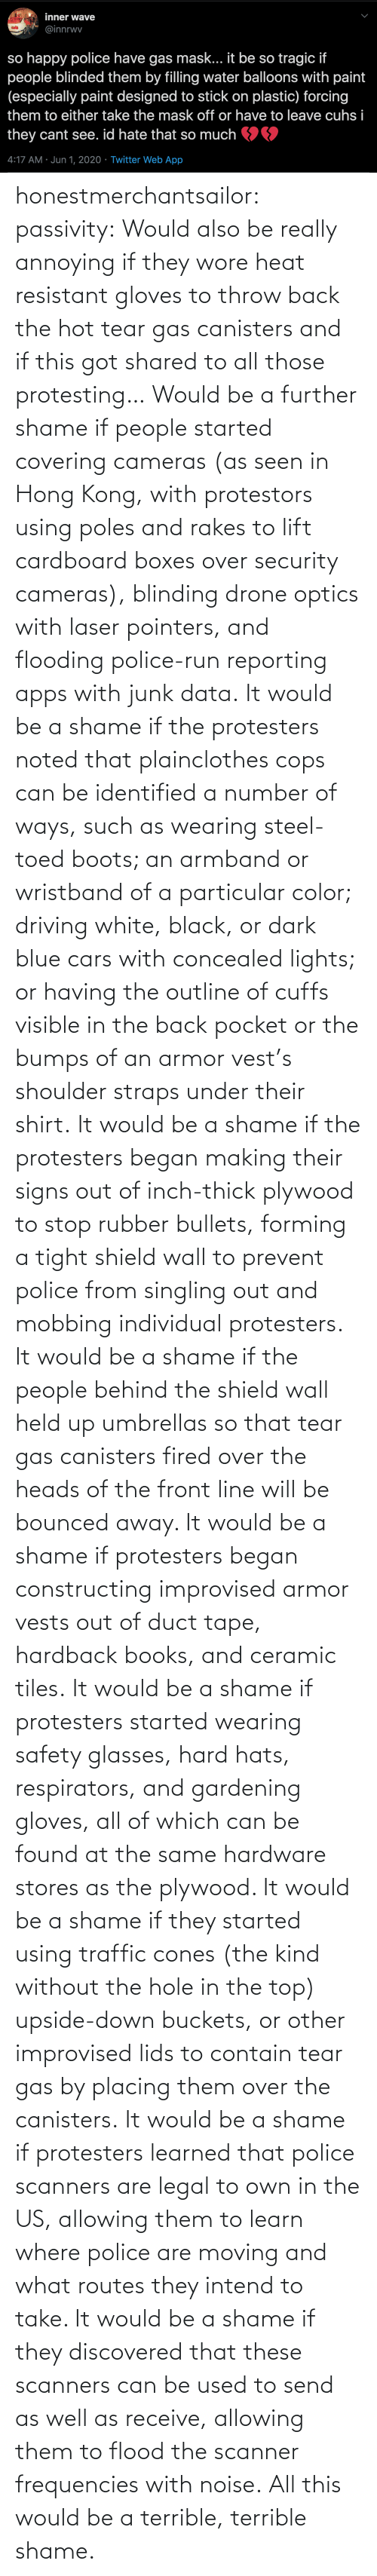 Kind: honestmerchantsailor: passivity: Would also be really annoying if they wore heat resistant gloves to throw back the hot tear gas canisters and if this got shared to all those protesting… Would be a further shame if people started covering cameras (as seen in Hong Kong, with protestors using poles and rakes to lift cardboard boxes over security cameras), blinding drone optics with laser pointers, and flooding police-run reporting apps with junk data. It would be a shame if the protesters noted that plainclothes cops can be identified a number of ways, such as wearing steel-toed boots; an armband or wristband of a particular color; driving white, black, or dark blue cars with concealed lights; or having the outline of cuffs visible in the back pocket or the bumps of an armor vest's shoulder straps under their shirt. It would be a shame if the protesters began making their signs out of inch-thick plywood to stop rubber bullets, forming a tight shield wall to prevent police from singling out and mobbing individual protesters. It would be a shame if the people behind the shield wall held up umbrellas so that tear gas canisters fired over the heads of the front line will be bounced away. It would be a shame if protesters began constructing improvised armor vests out of duct tape, hardback books, and ceramic tiles. It would be a shame if protesters started wearing safety glasses, hard hats, respirators, and gardening gloves, all of which can be found at the same hardware stores as the plywood. It would be a shame if they started using traffic cones (the kind without the hole in the top) upside-down buckets, or other improvised lids to contain tear gas by placing them over the canisters. It would be a shame if protesters learned that police scanners are legal to own in the US, allowing them to learn where police are moving and what routes they intend to take. It would be a shame if they discovered that these scanners can be used to send as well as receive, allowing them to flood the scanner frequencies with noise. All this would be a terrible, terrible shame.